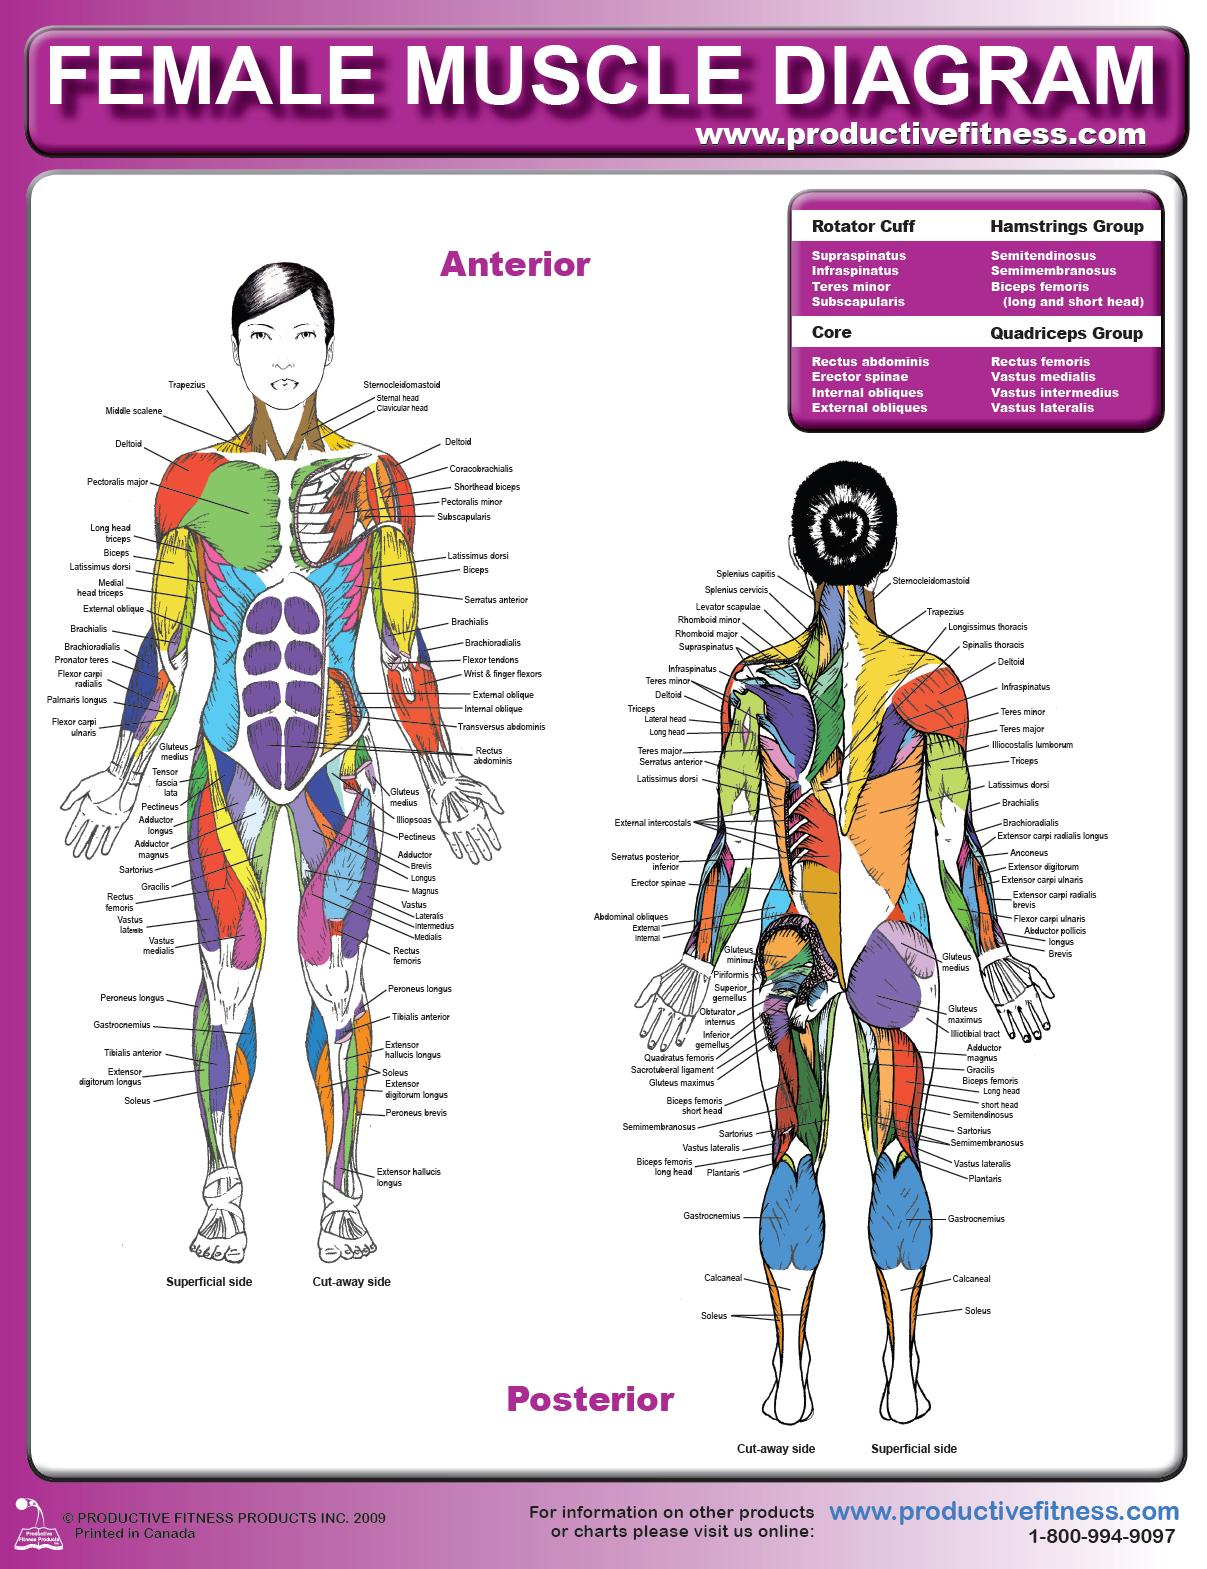 Female Muscle Diagram and Definitions | Jacki\'s Blog